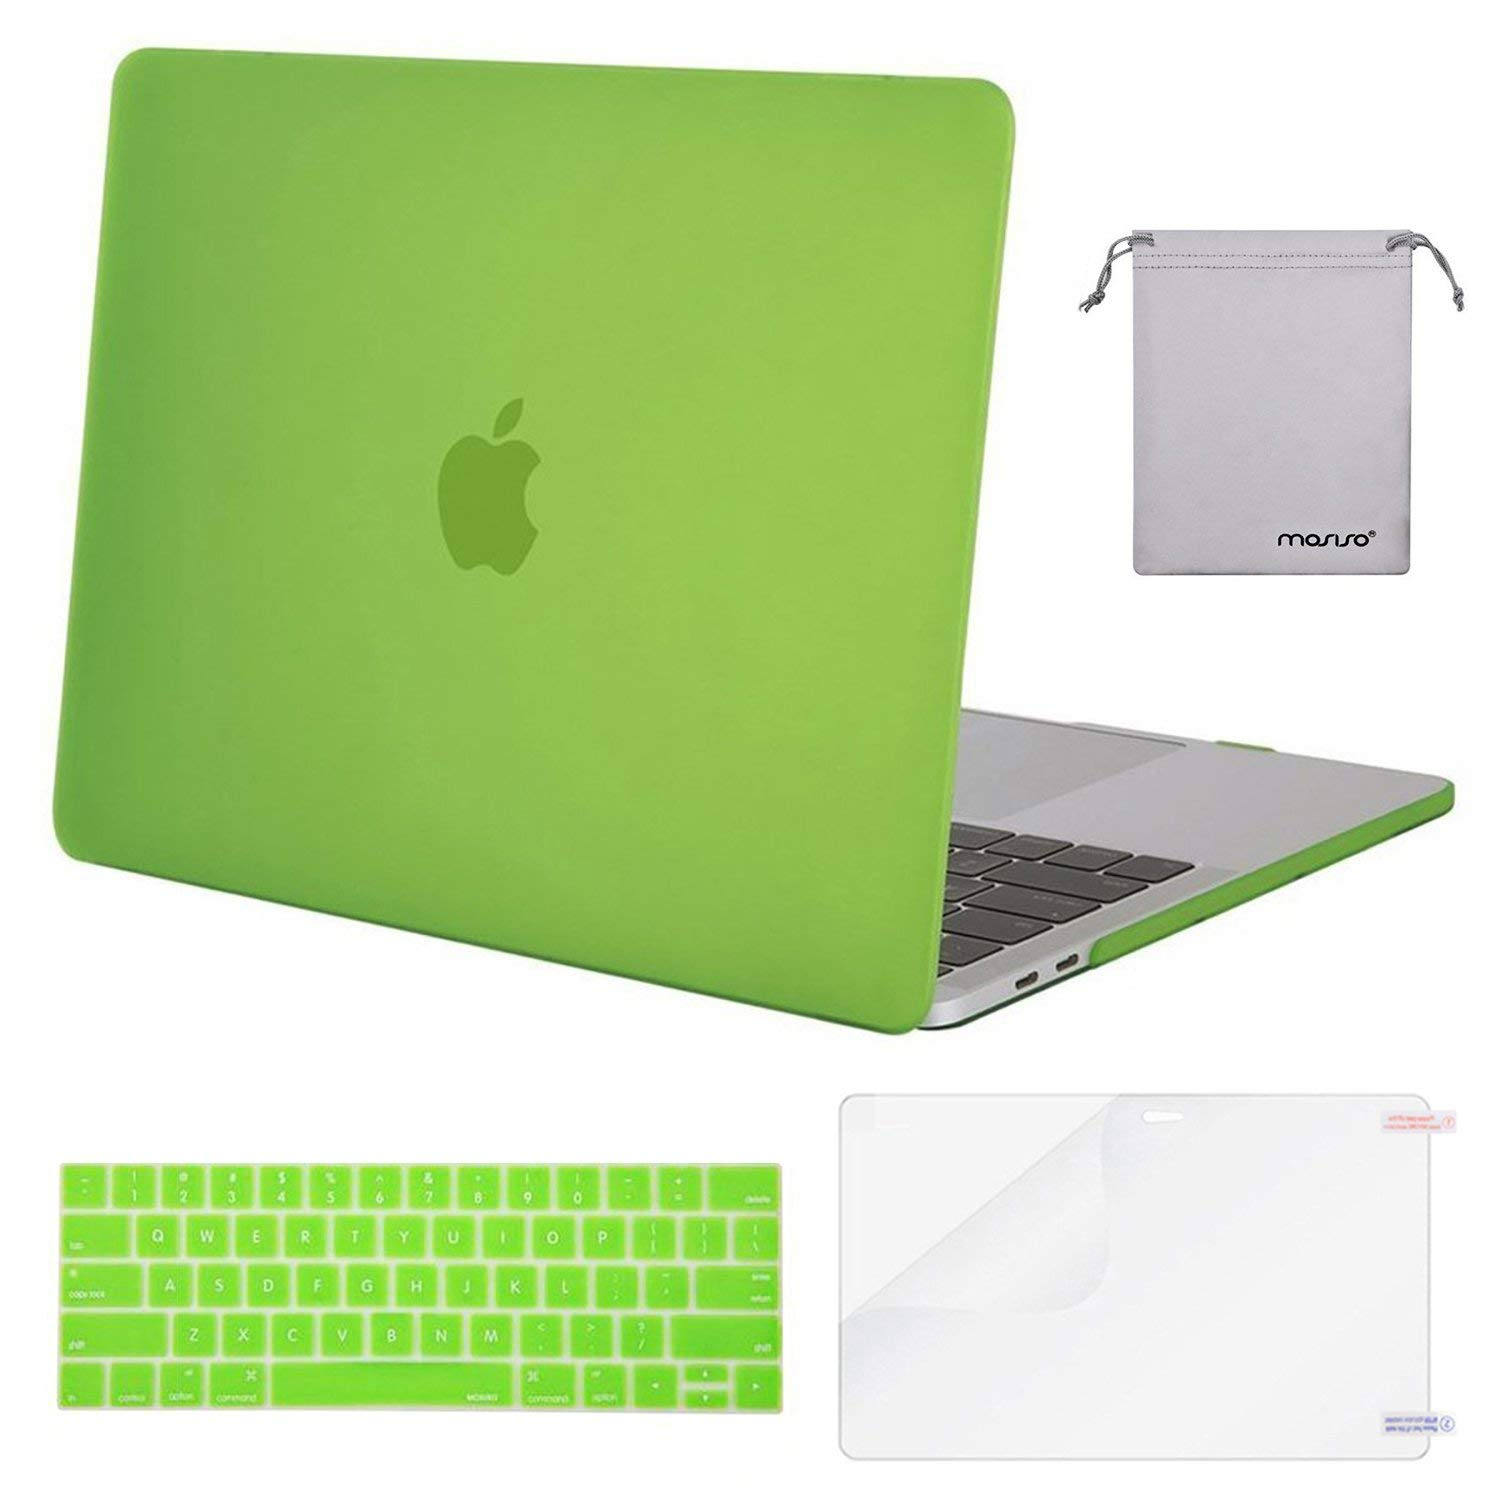 Royal Blue Plastic Hard Shell /& Keyboard Cover /& Screen Protector /& Storage Bag Compatible Newest MacBook Pro 13 Inch MOSISO MacBook Pro 13 Case 2019 2018 2017 2016 Release A1989 A1706 A1708